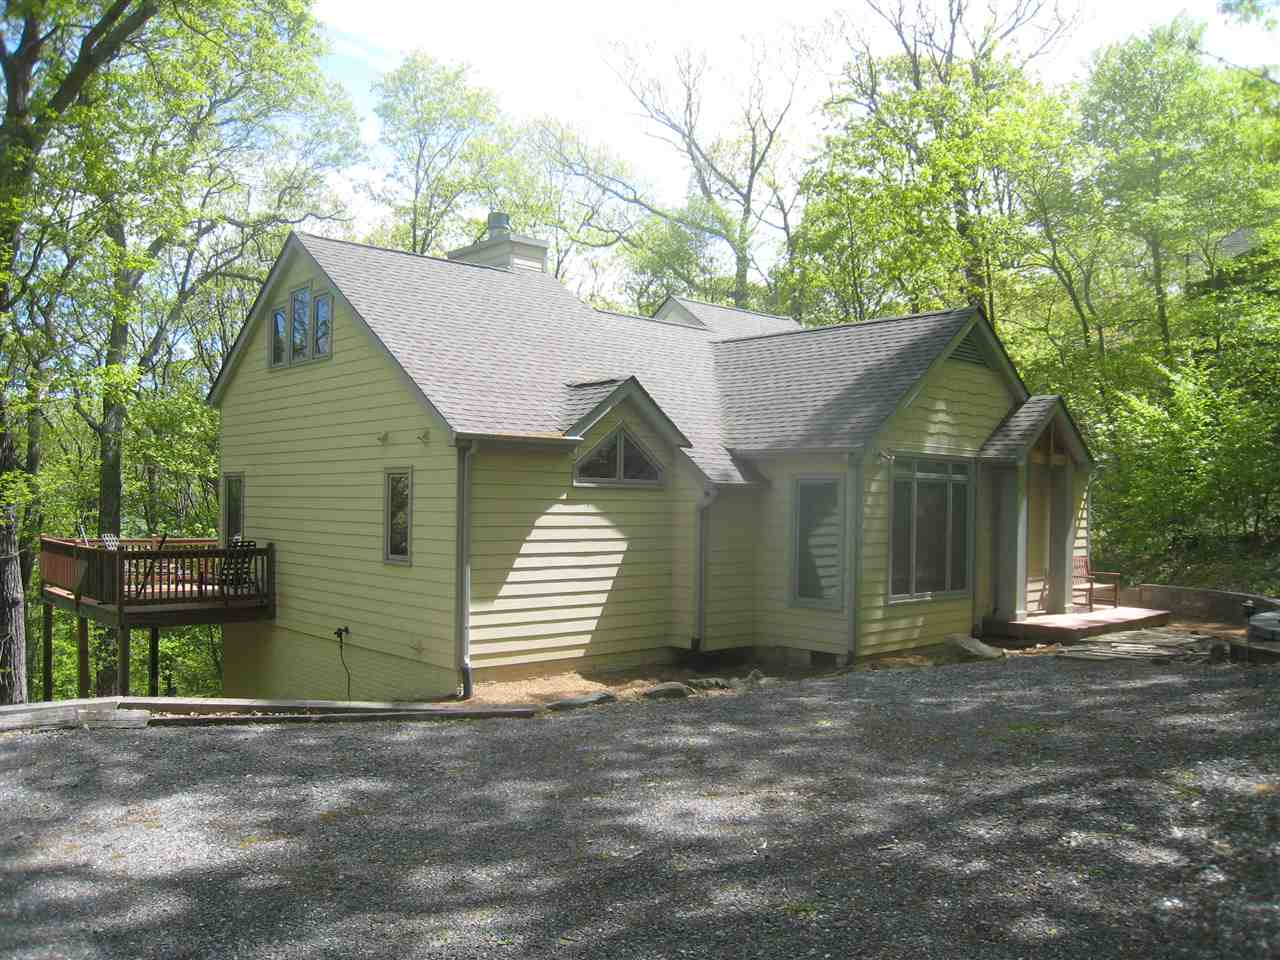 Post & Beam,Craftsman, Detached - WINTERGREEN RESORT, VA (photo 2)